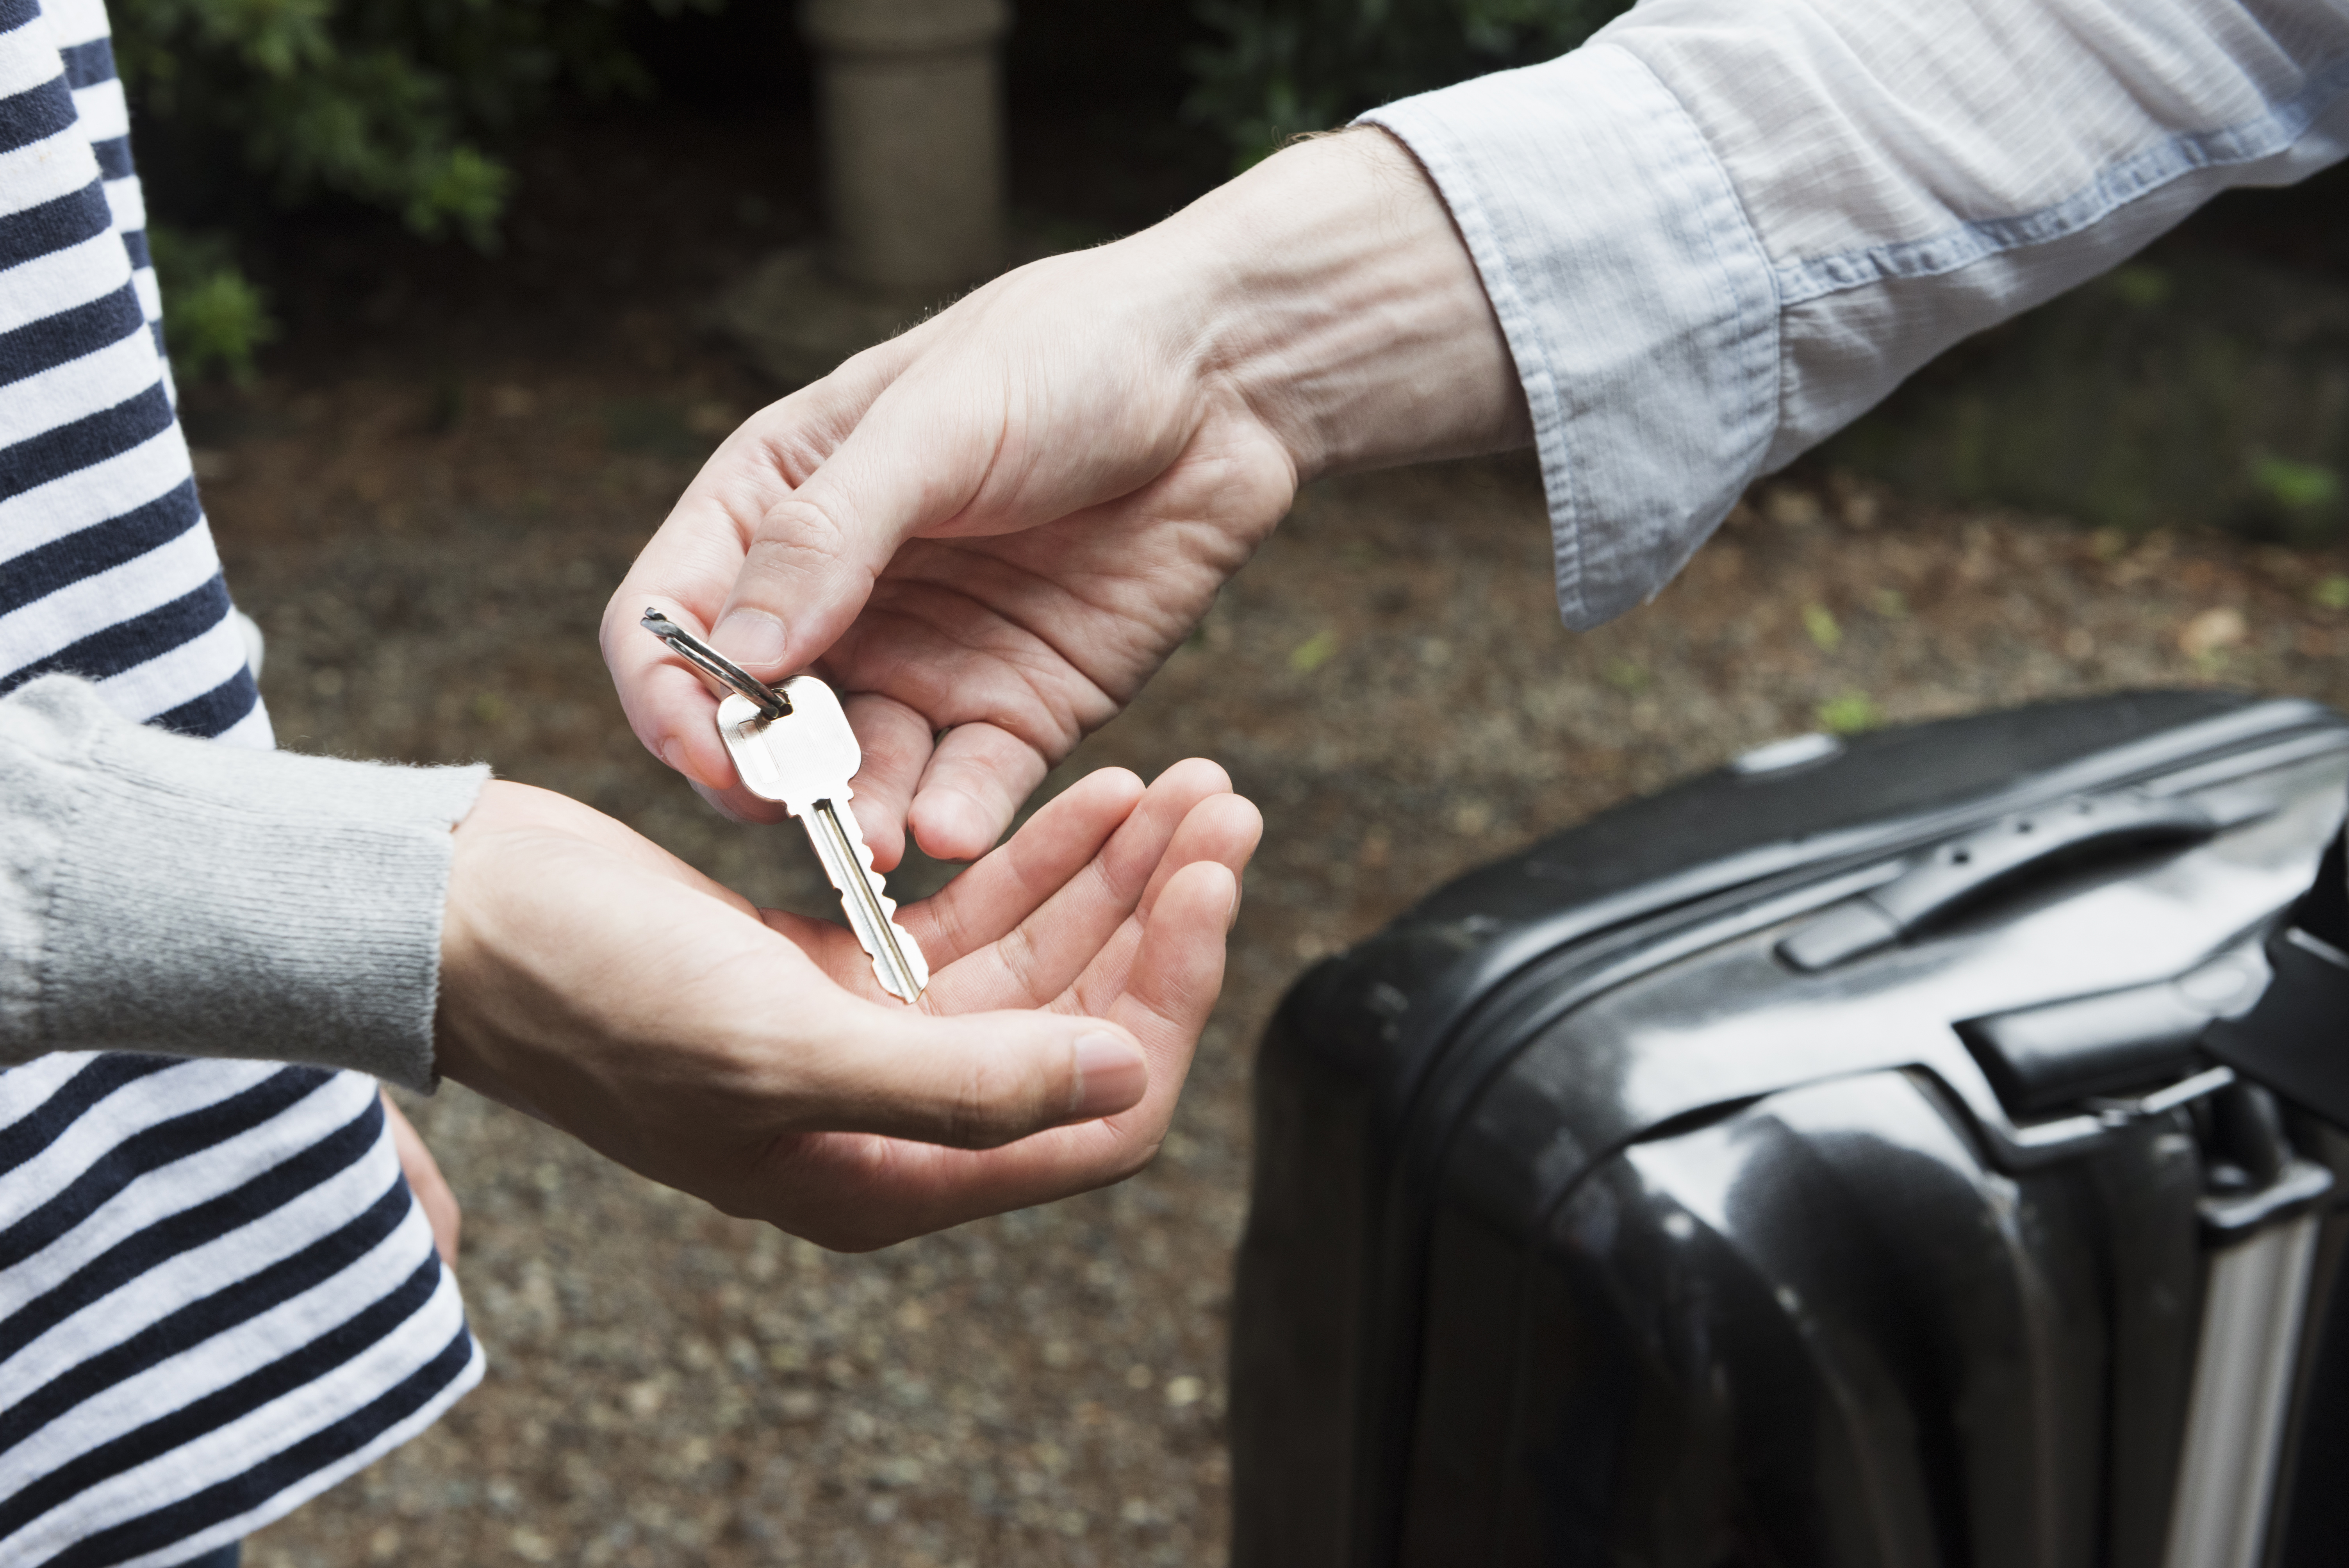 The recent developments all Airbnb landlords must consider